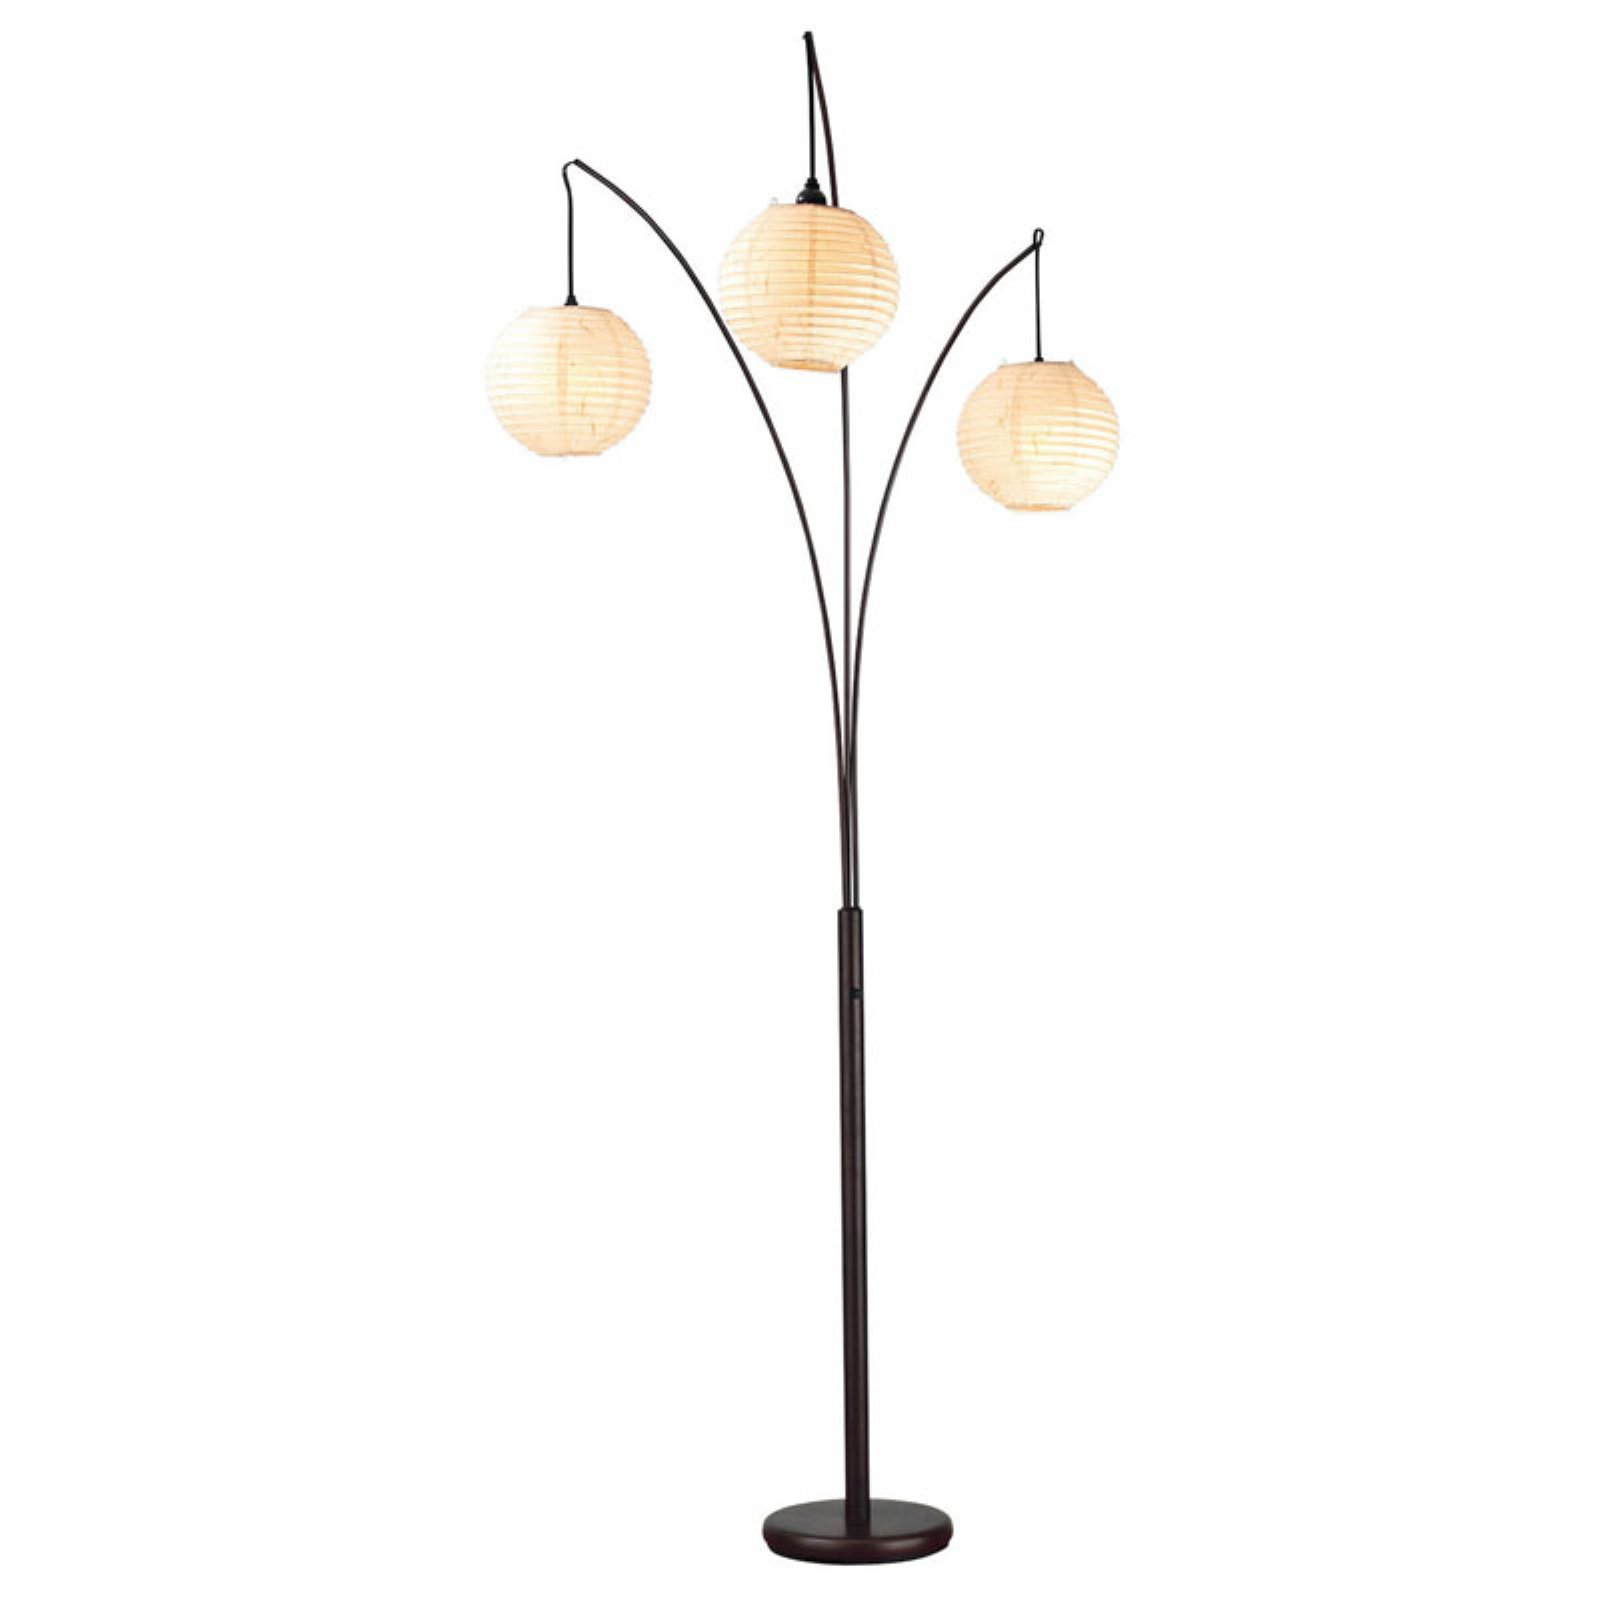 Adesso Spheres Arc Floor Lamp, Antique Bronze Finish by Adesso